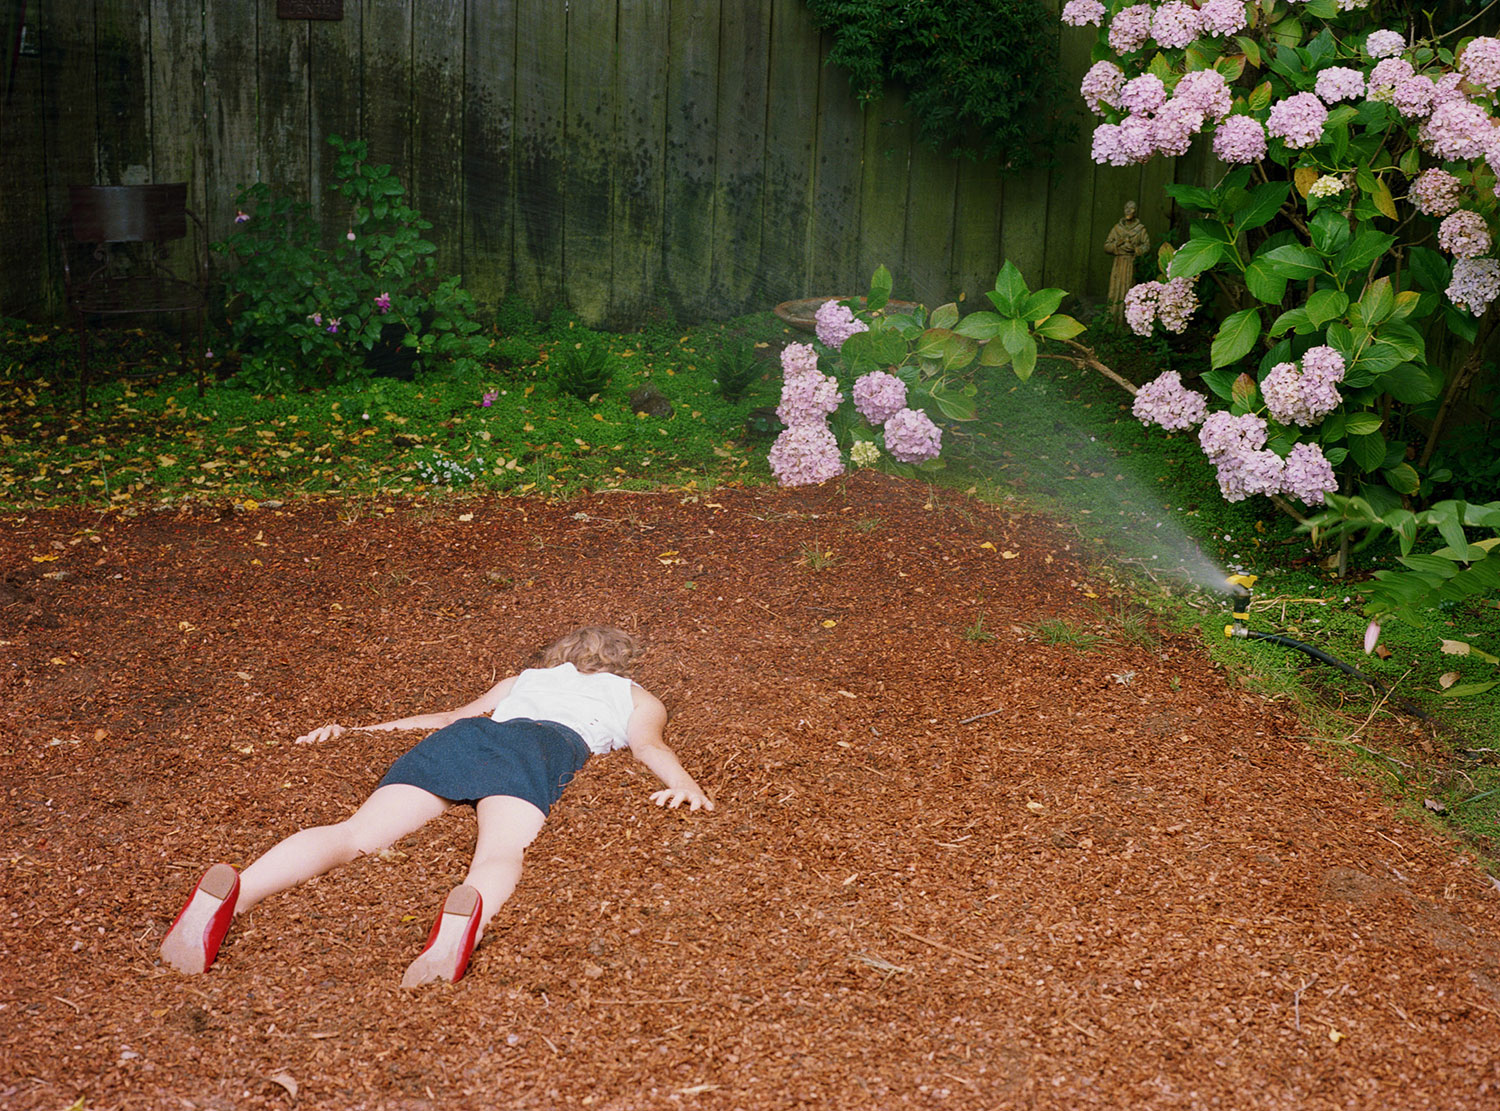 Level with the Backyard, 2011 by Lee Materazzi | Yellowtrace.